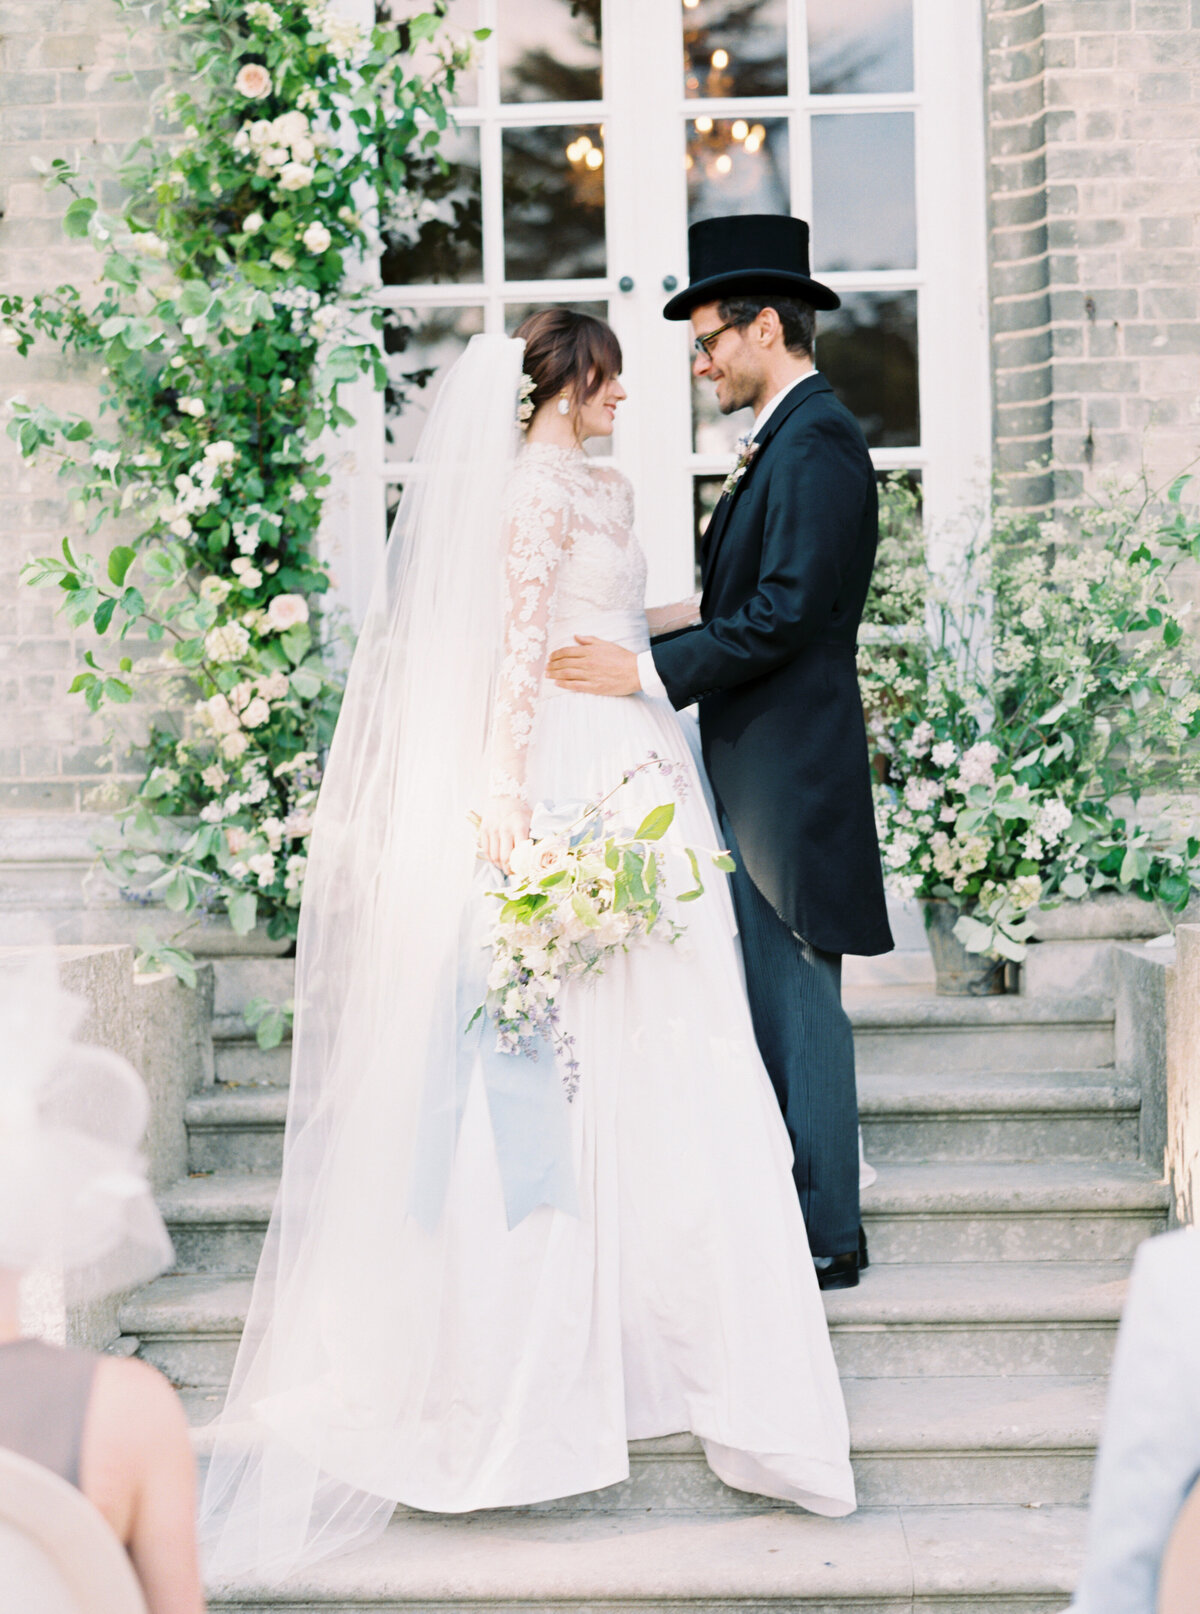 TiffaneyChildsPhotography-LondonWeddingPhotographer-Julieta+Cedrick-HedsorHouseWedding-226